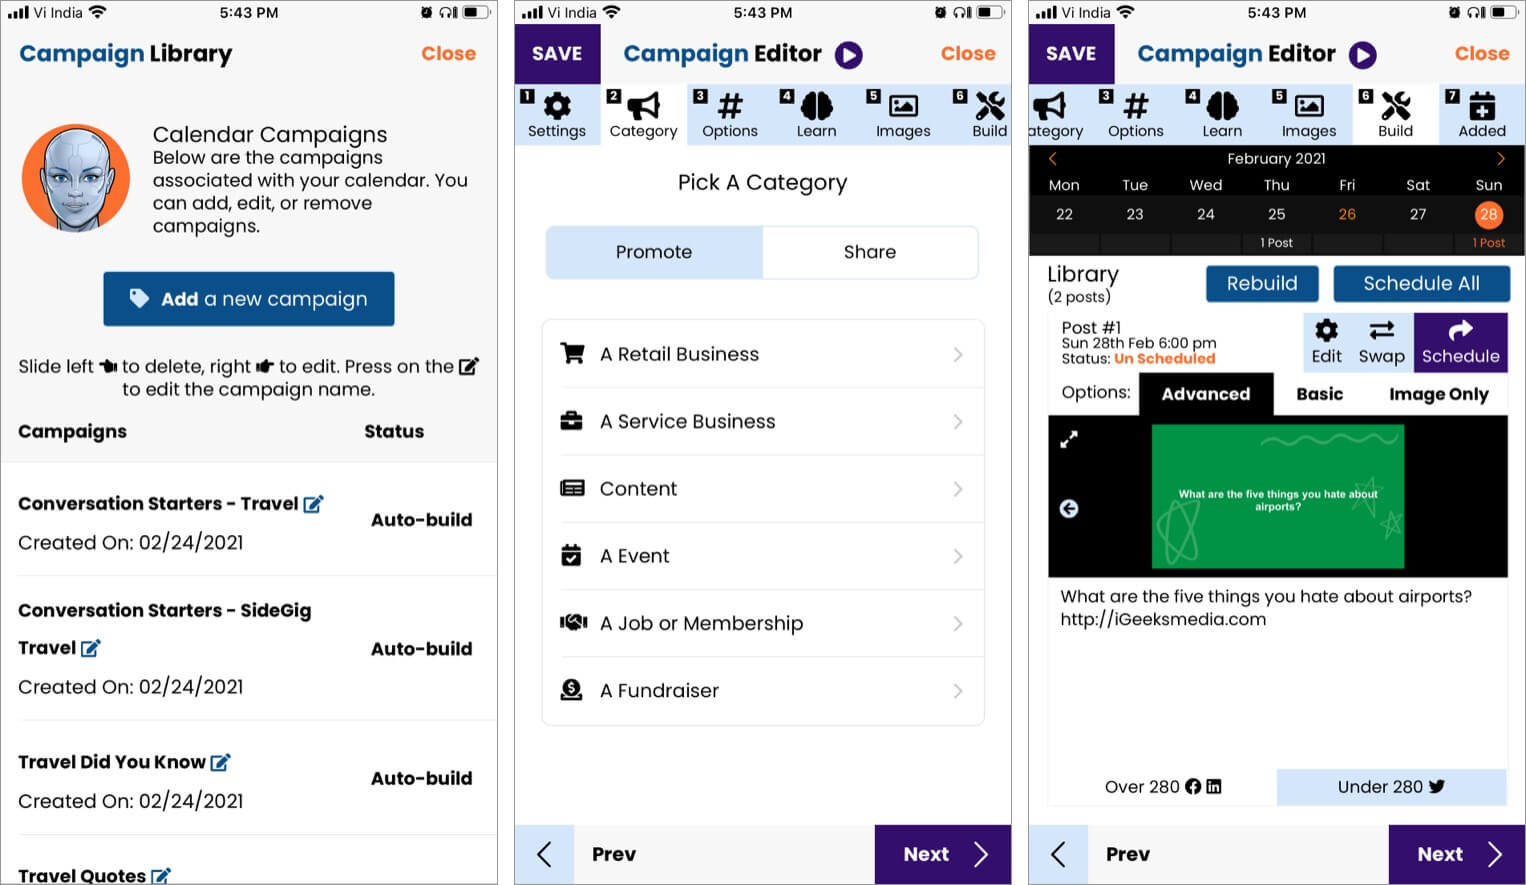 AIMI iOS app works according to campaigns